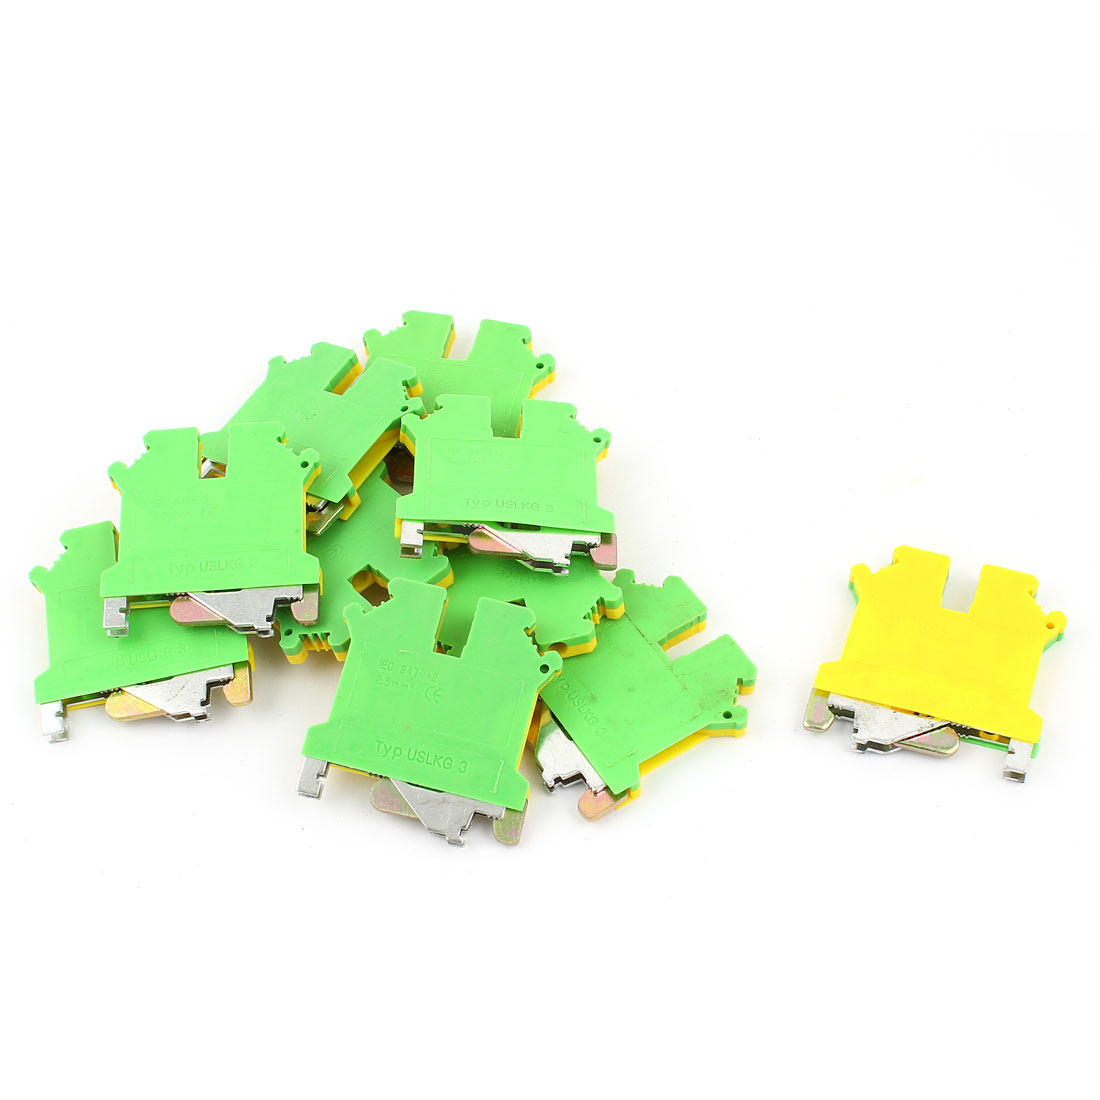 10 Pcs USLKG3 0.2-2.5mm2 Wire Rail Mount Grounding Terminal Block Yellow Green